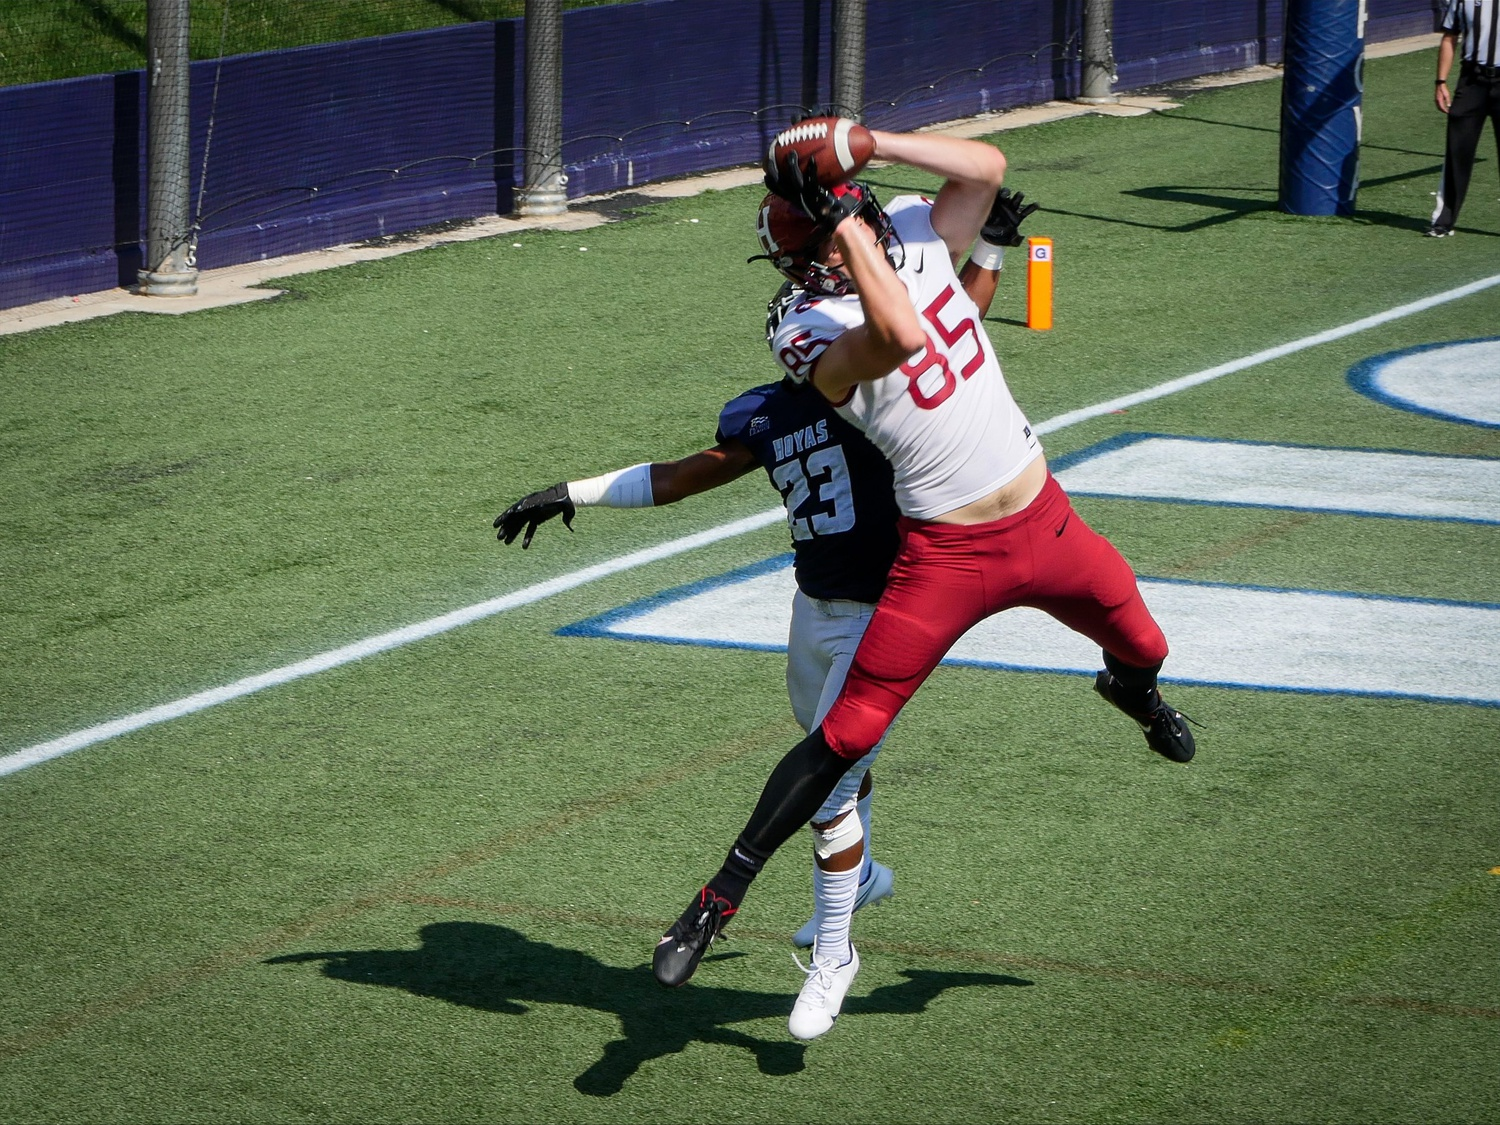 Senior tight end Adam West skies above the Hoyas defender to pull down a touchdown grab, giving the Crimson a 37-9 lead en route to a 44-9 final score.